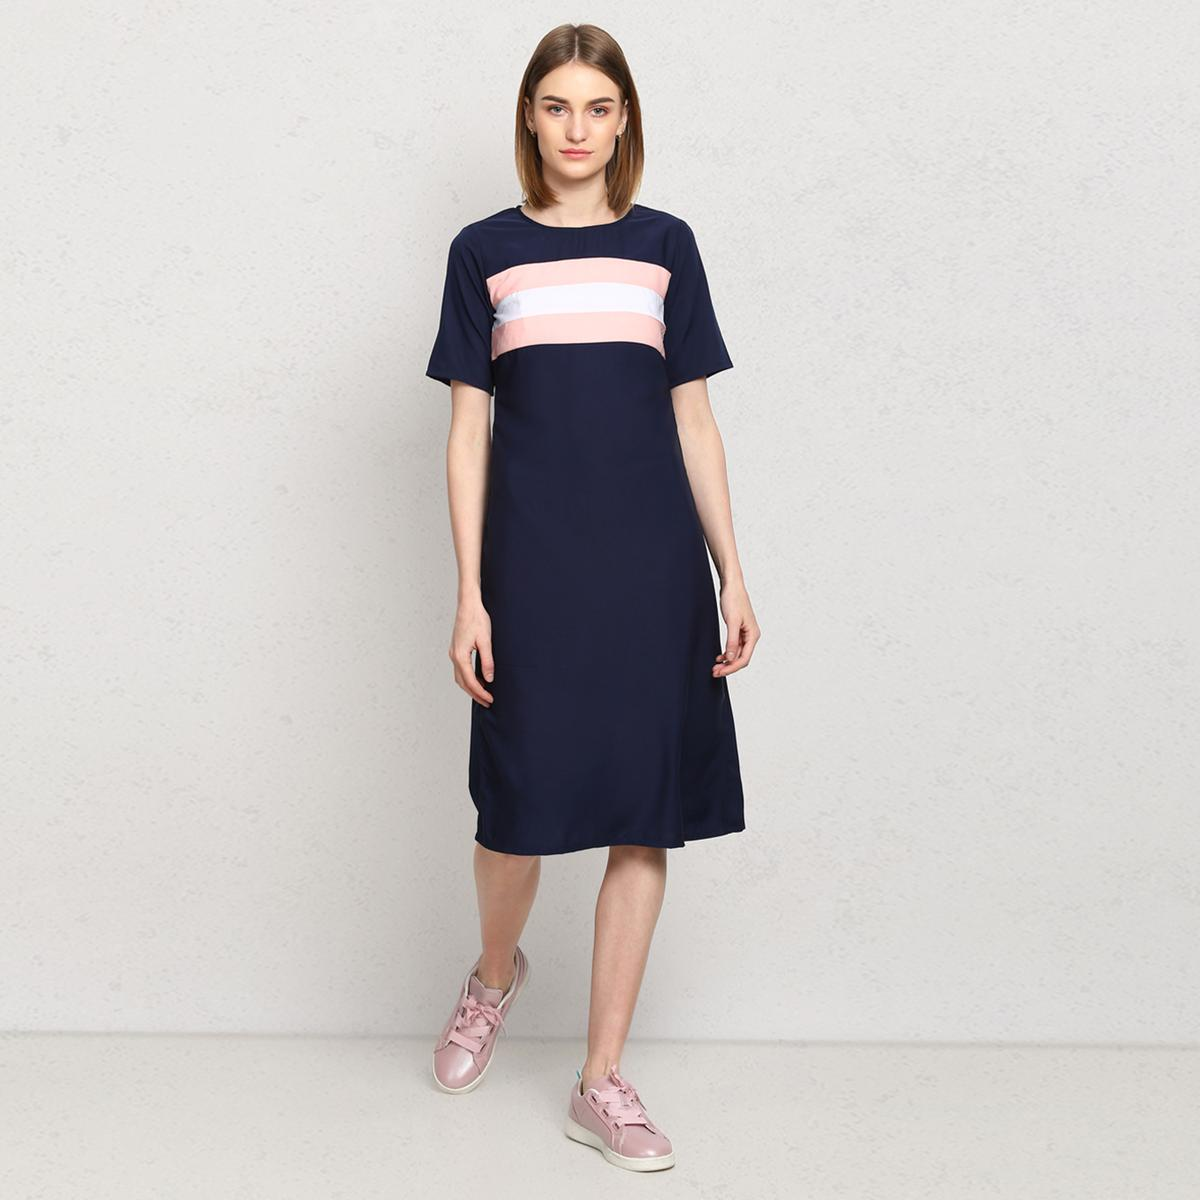 OMADAM - Navy Blue Colored Casual Crepe Dress